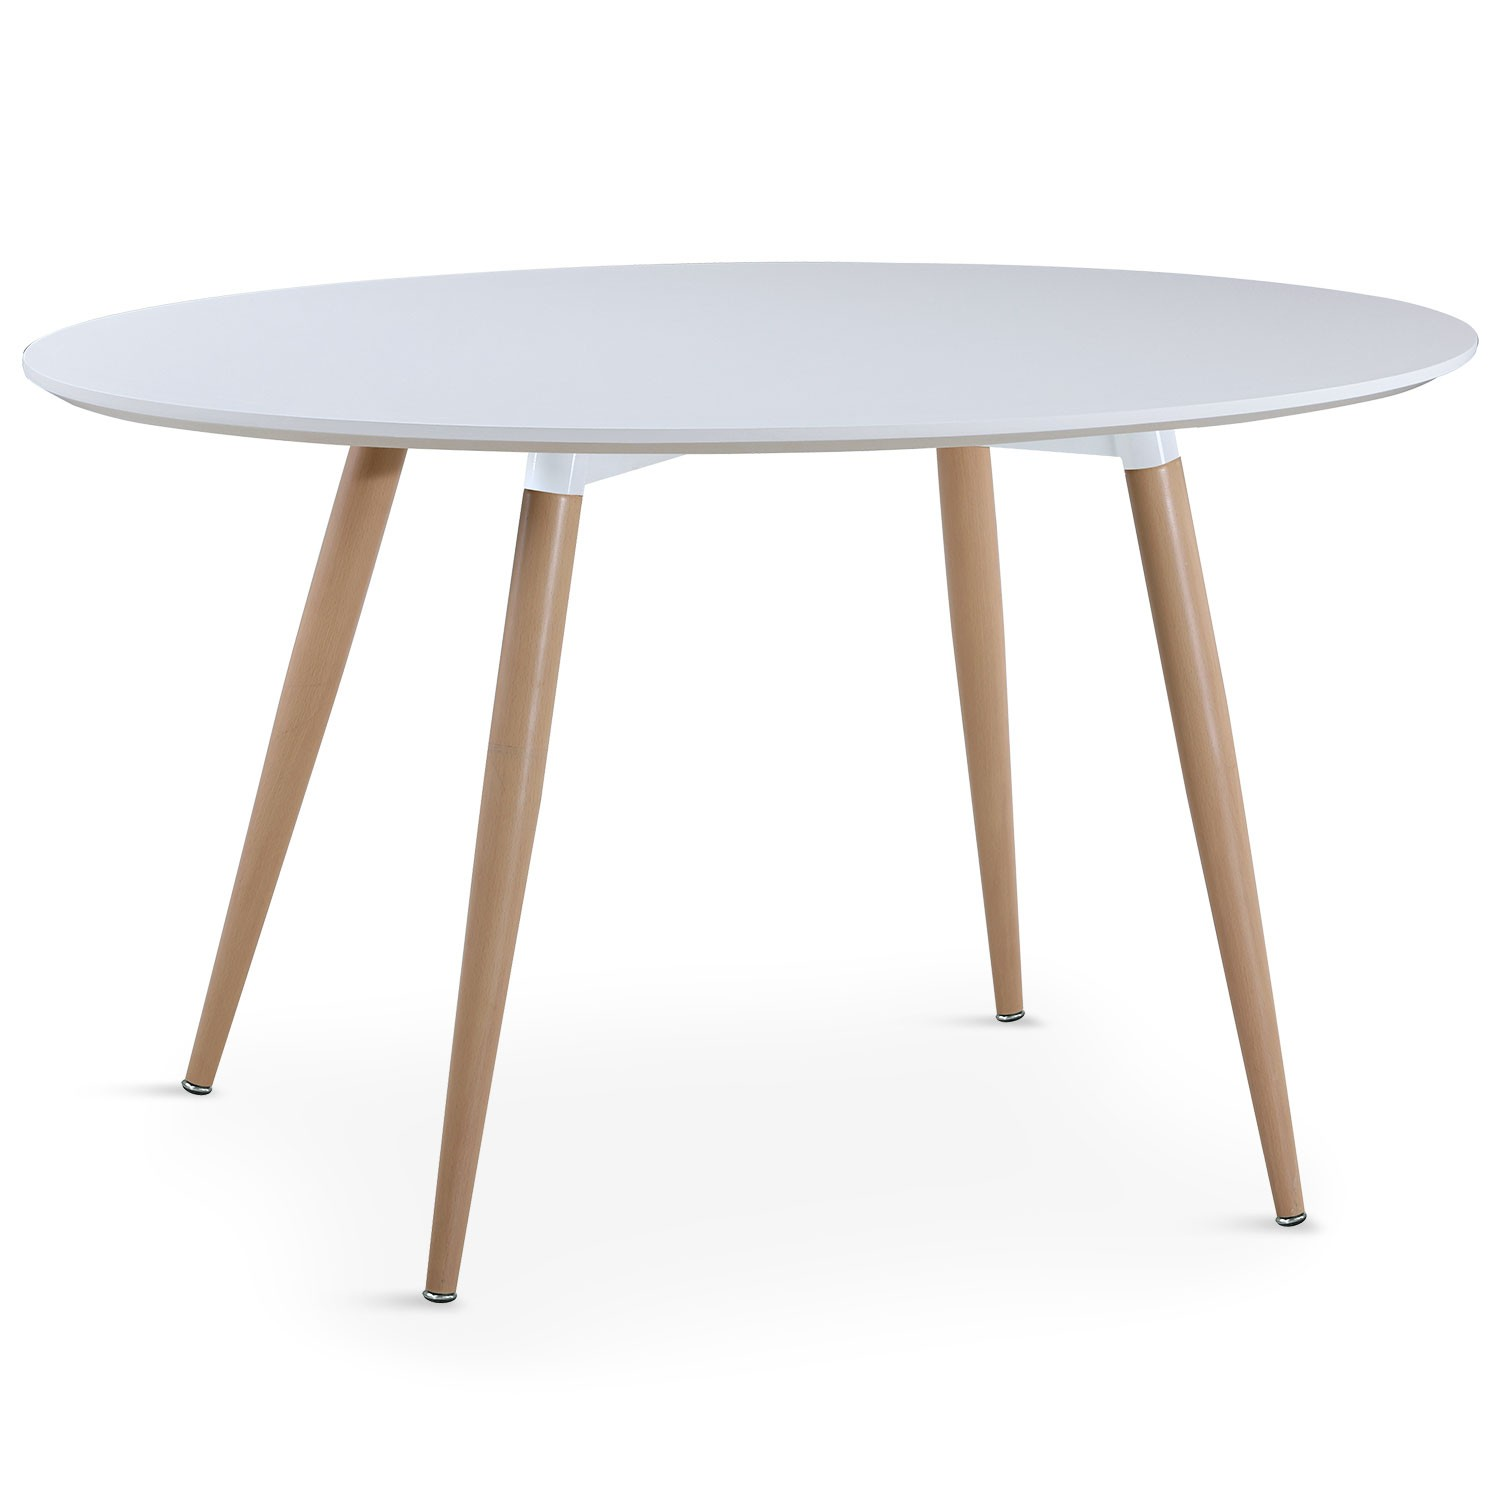 Table ovale scandinave lunea blanc table de repas for Table ronde design scandinave